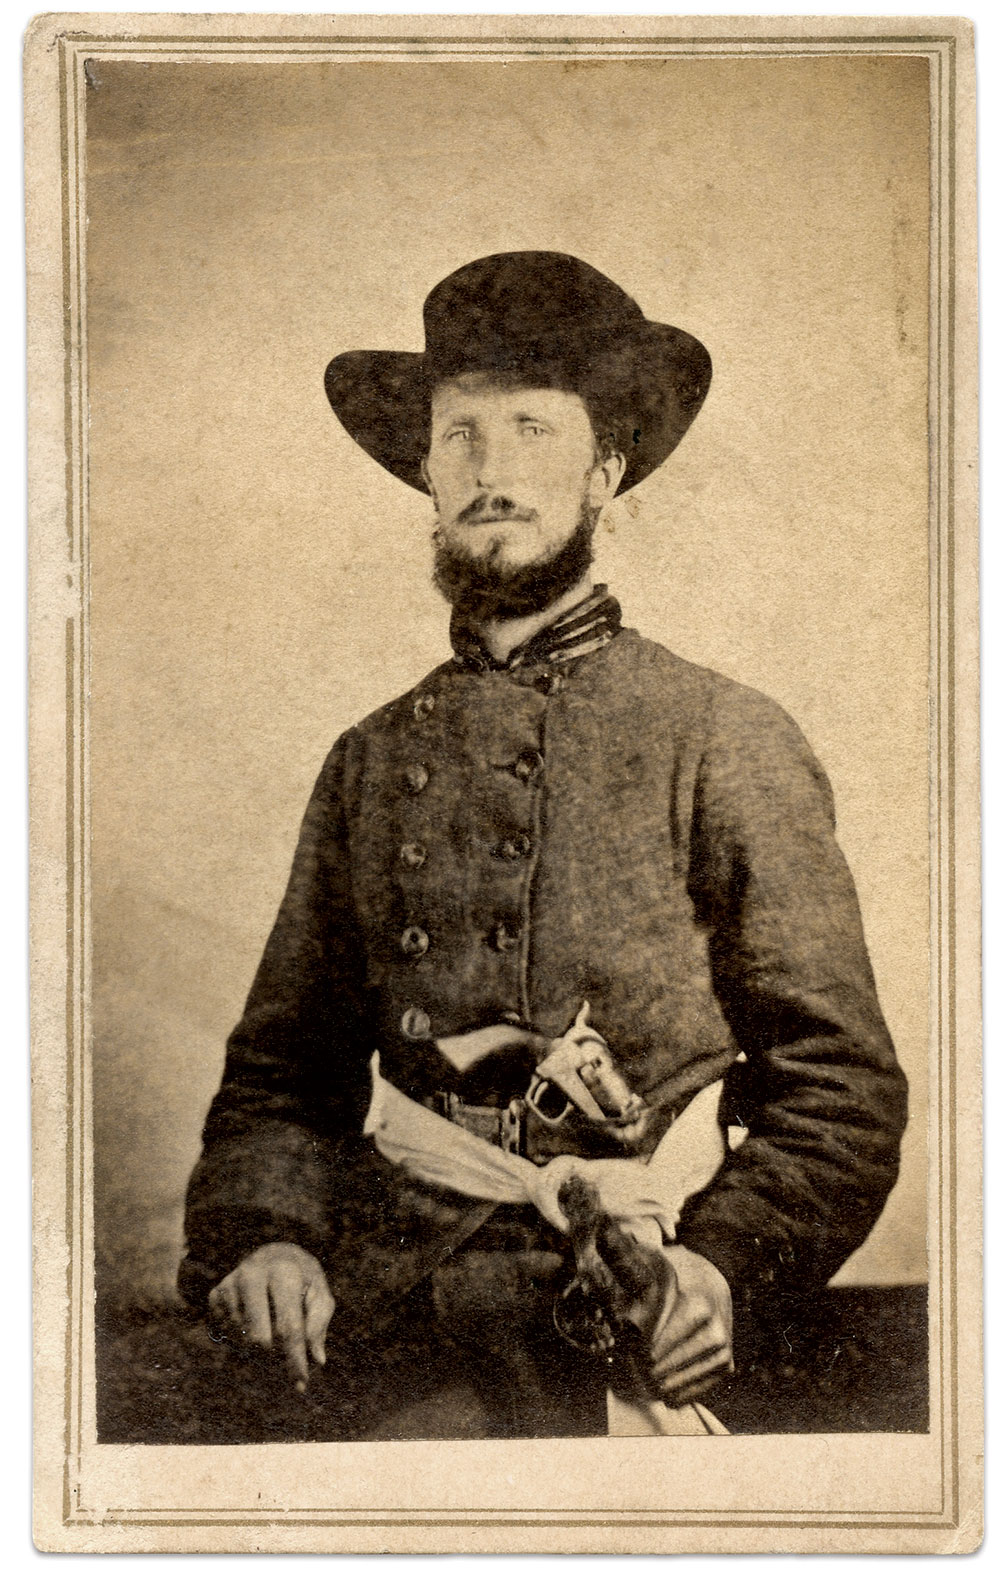 Carte de visite by Fittman & Wolfrom of Trenton, Tenn. Daniel Taylor Collection.